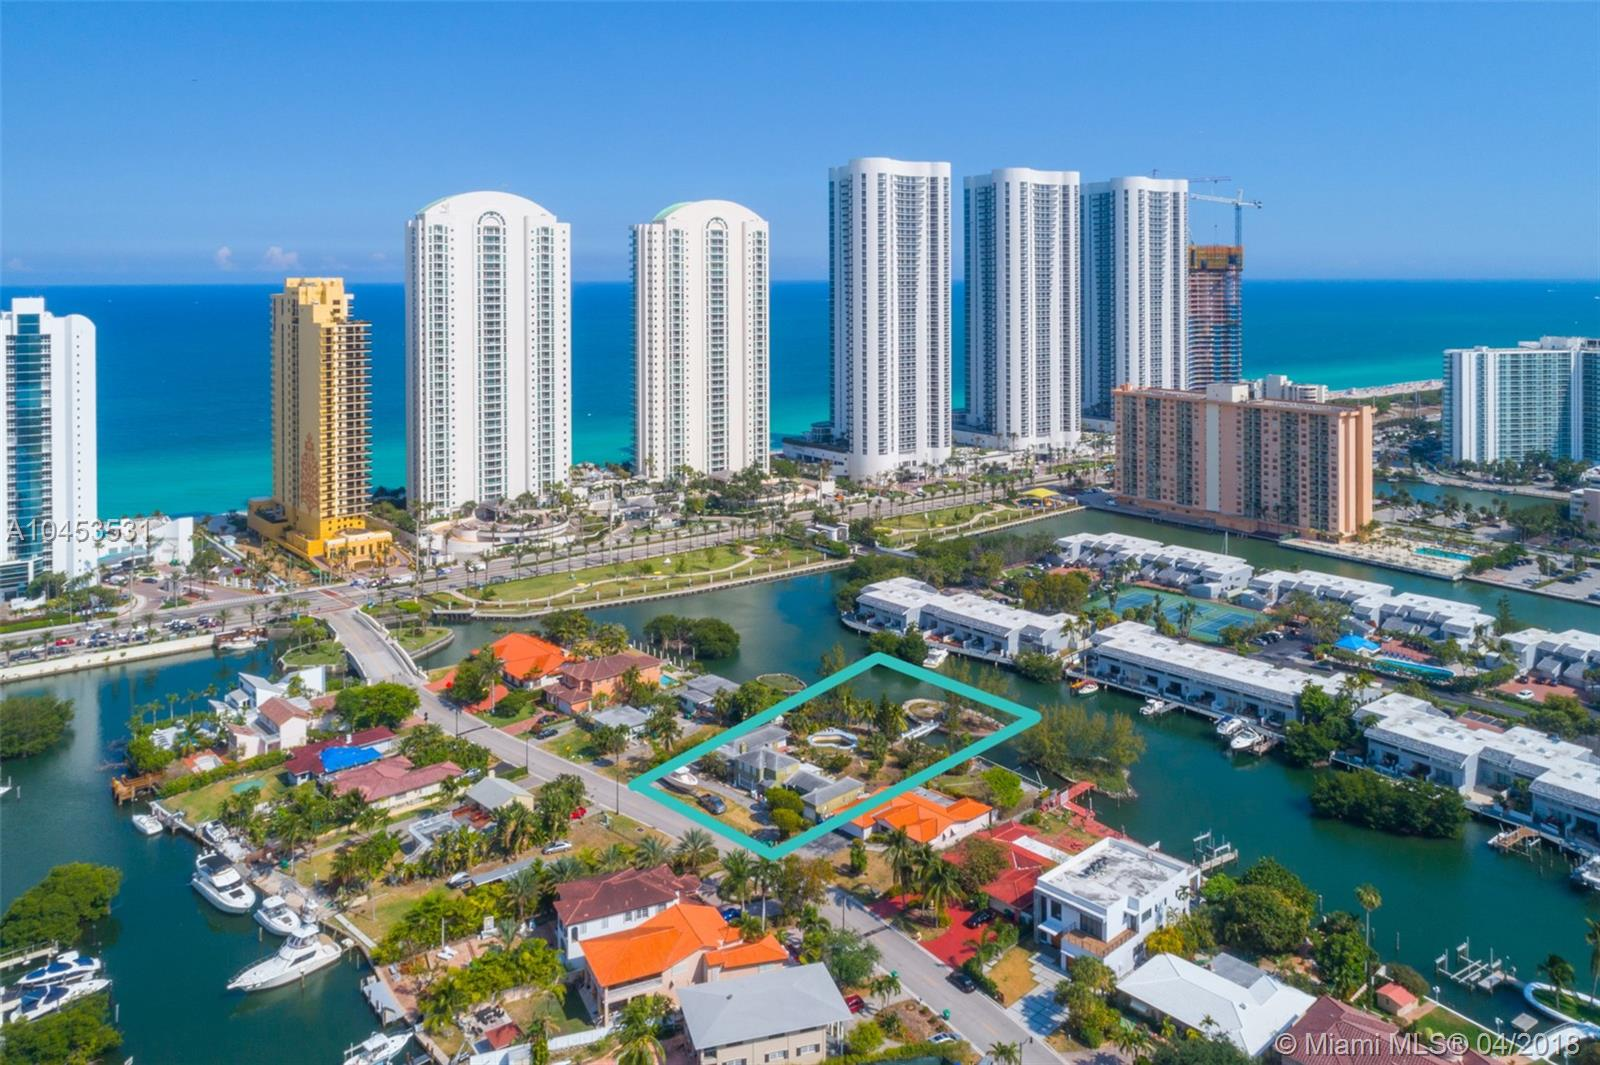 Live In Coveted Atlantic Isle In Sunny Isles Beach On A 20, 417 Square Foot Waterfront Lot With 140+Ógé¼Gäó On The Water. Rare Deeded Private Island Behind The Property! The Property Features Private, Deep Water Docking, Ocean Access And Access To A Gated Private Beach With A Cabana Owned By The Community. Located Minutes From World-Class Shopping, Beaches, Dining And Houses Of Worship.